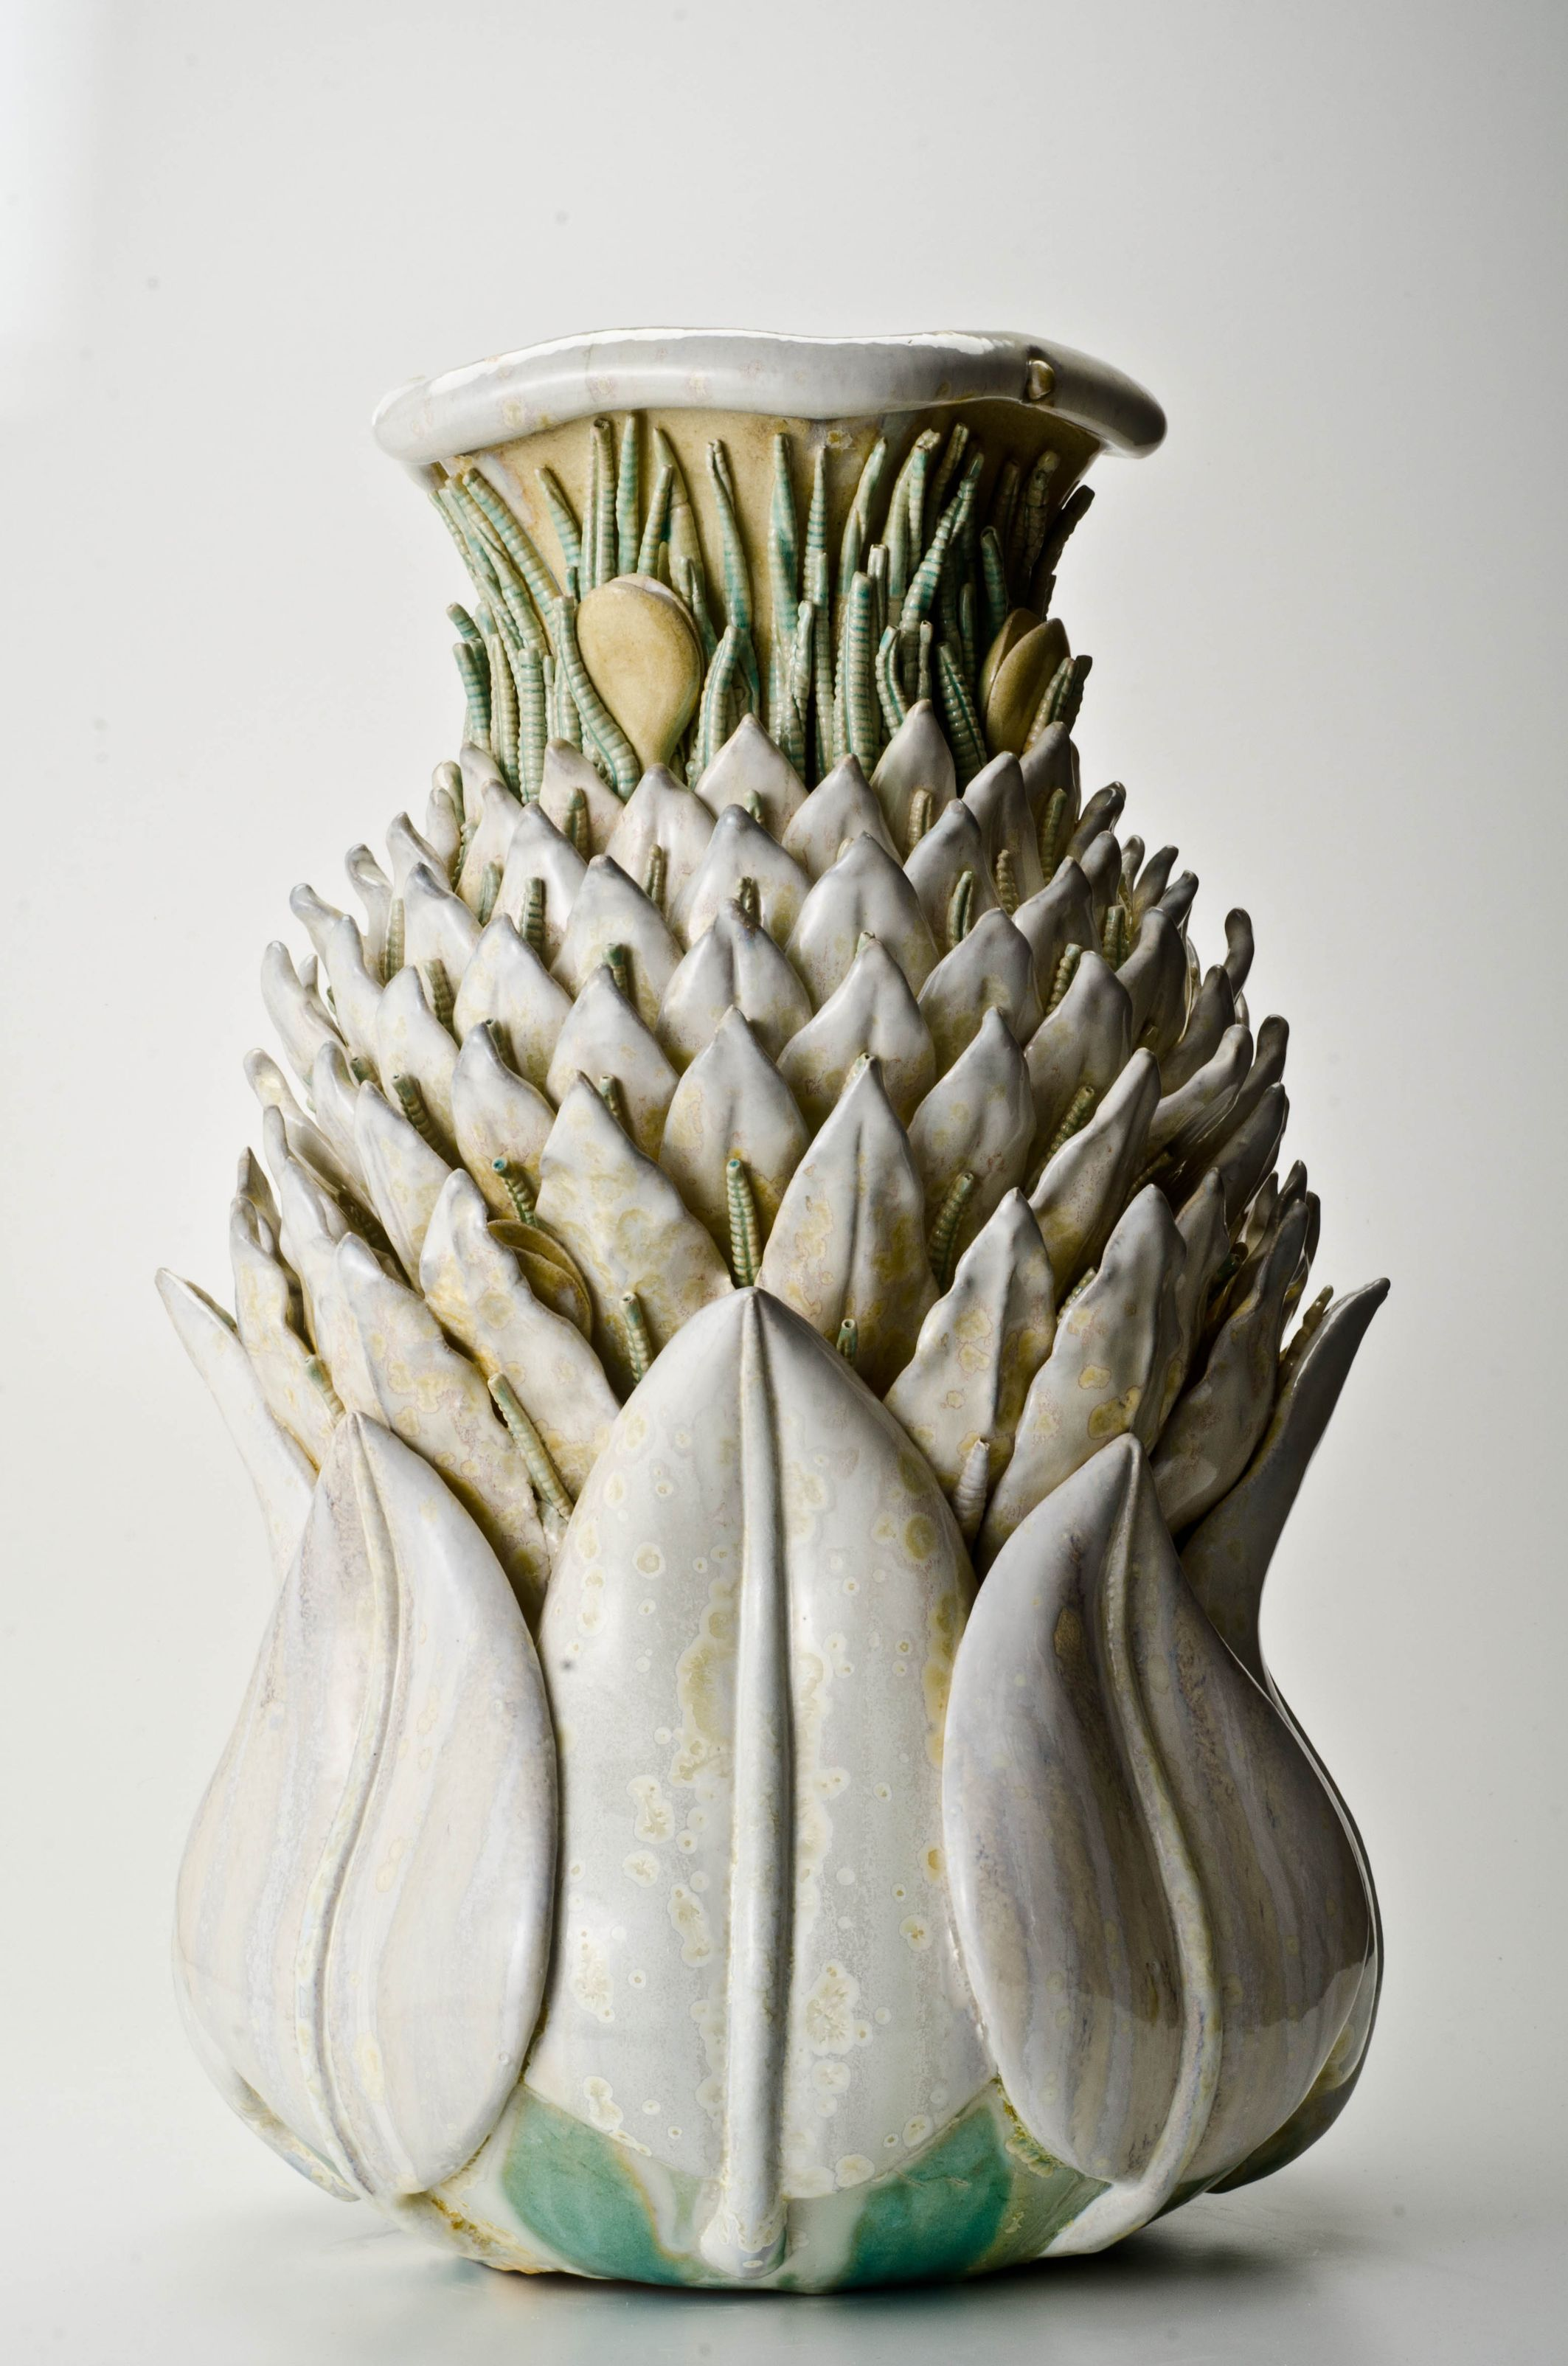 Available at masterpiecef fair for adrian sassoon vase by kate available at masterpiecef fair for adrian sassoon vase by kate malone reviewsmspy